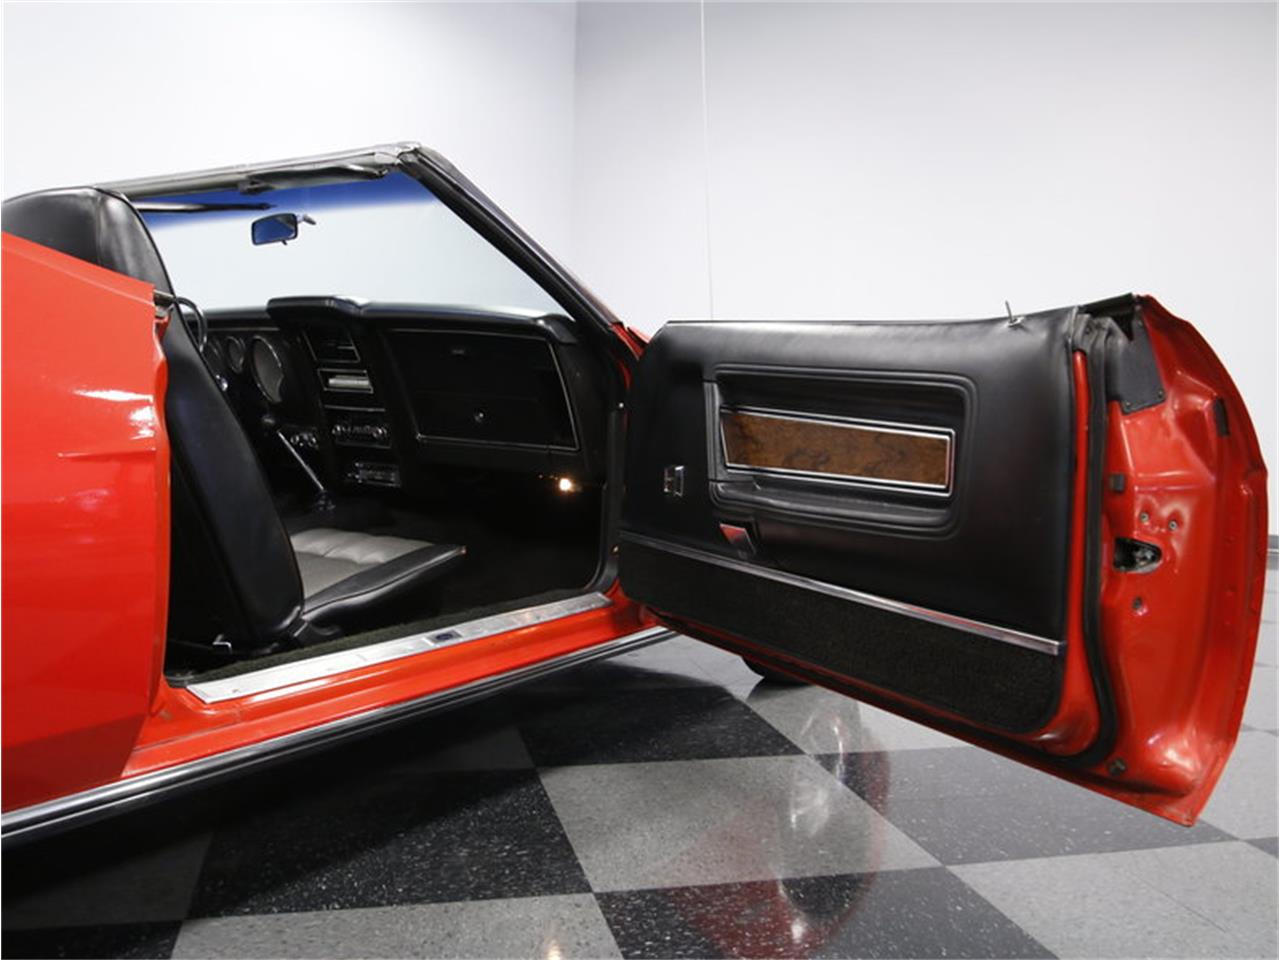 Large Picture of Classic '73 Ford Mustang 351 Cobra Jet located in Concord North Carolina - KISW